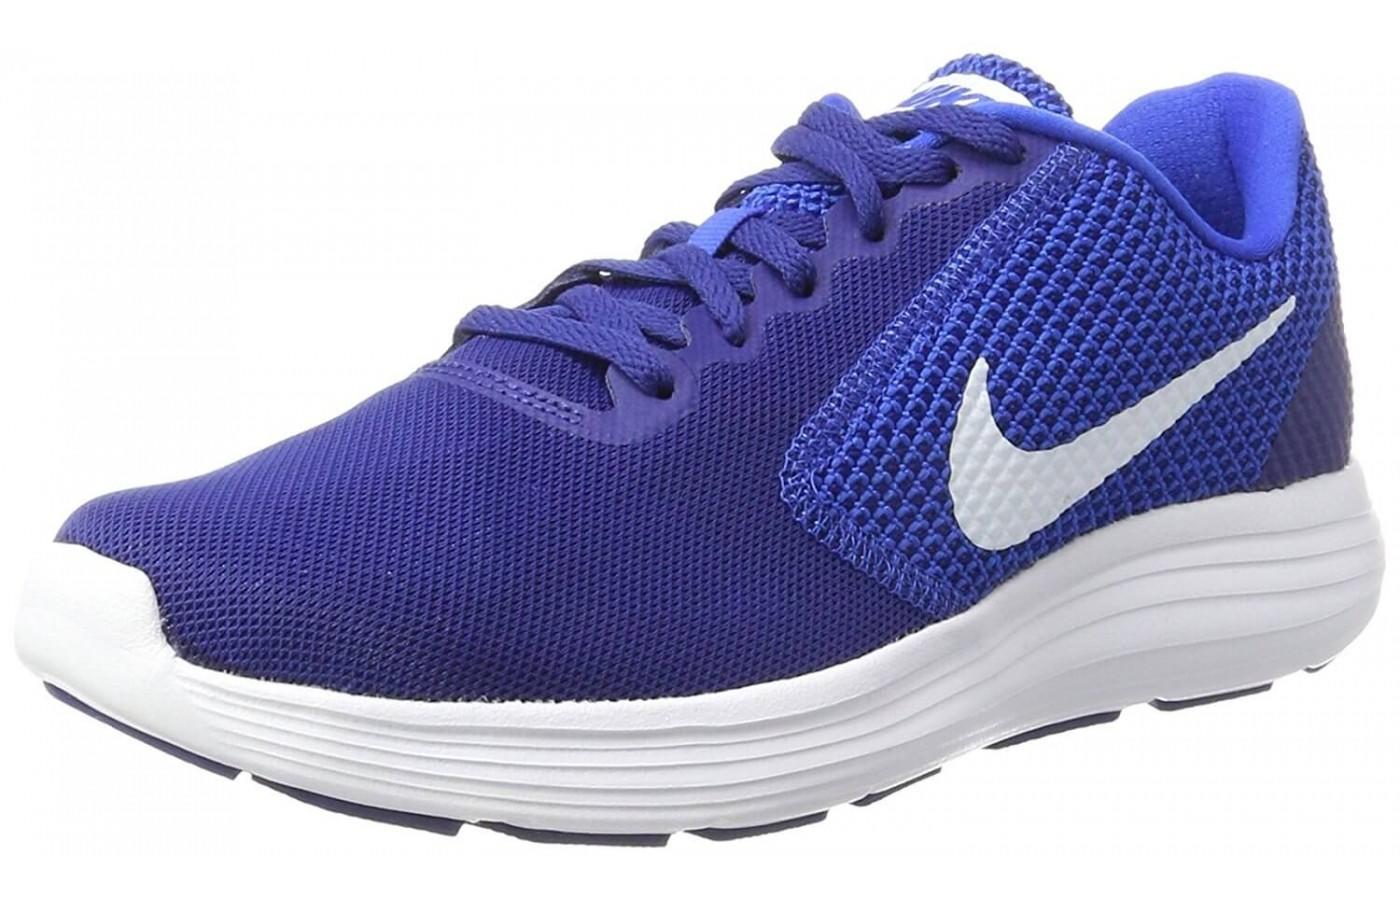 The Nike Revolution 3 features Phylon midsole cushioning ... d6bd79503e51